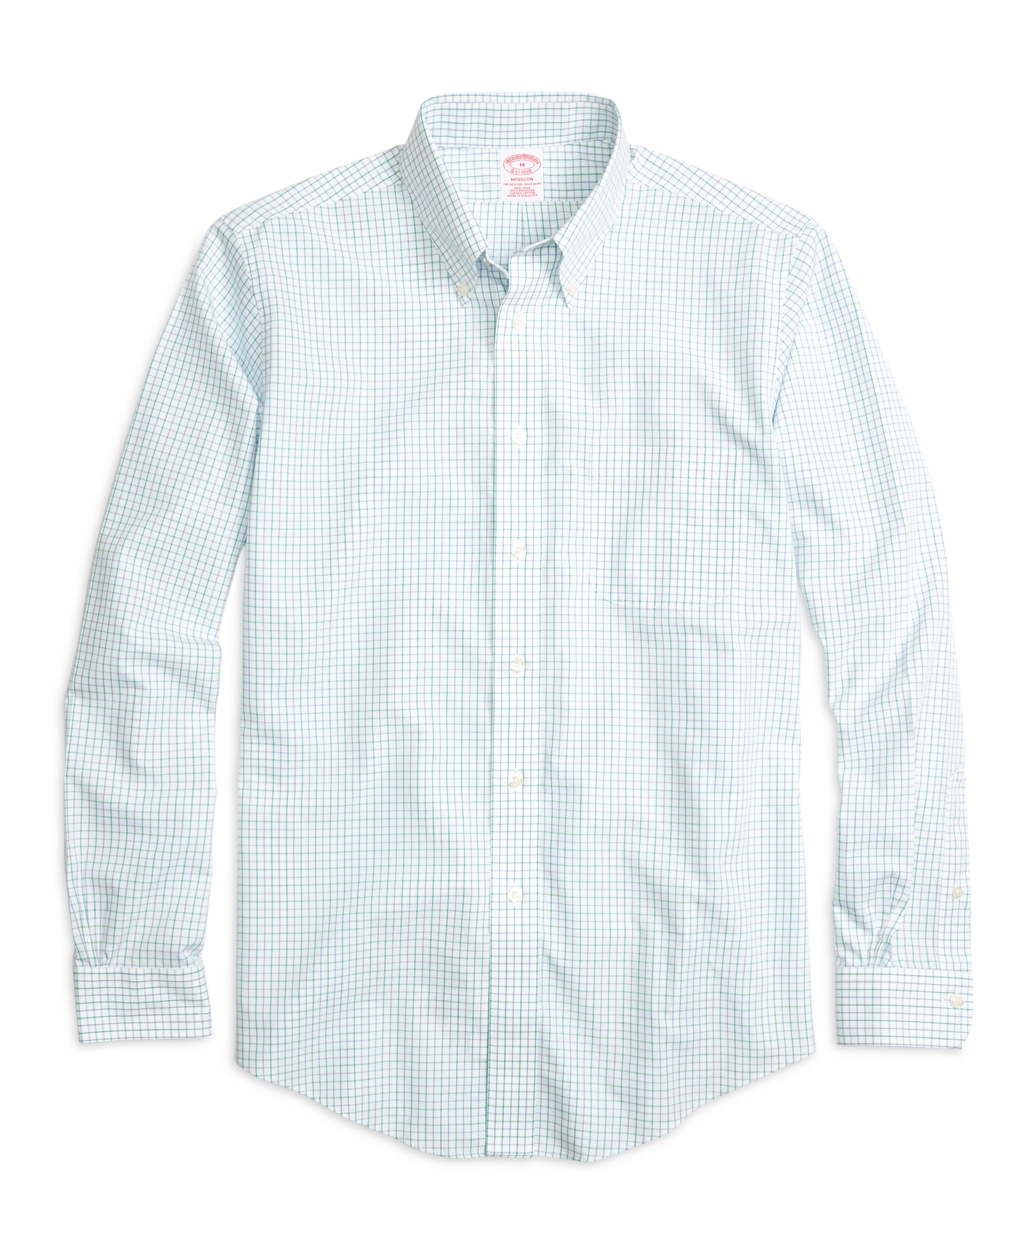 Brooks brothers non iron brookscool regent fit tattersall for Brooks brothers dress shirt fit guide